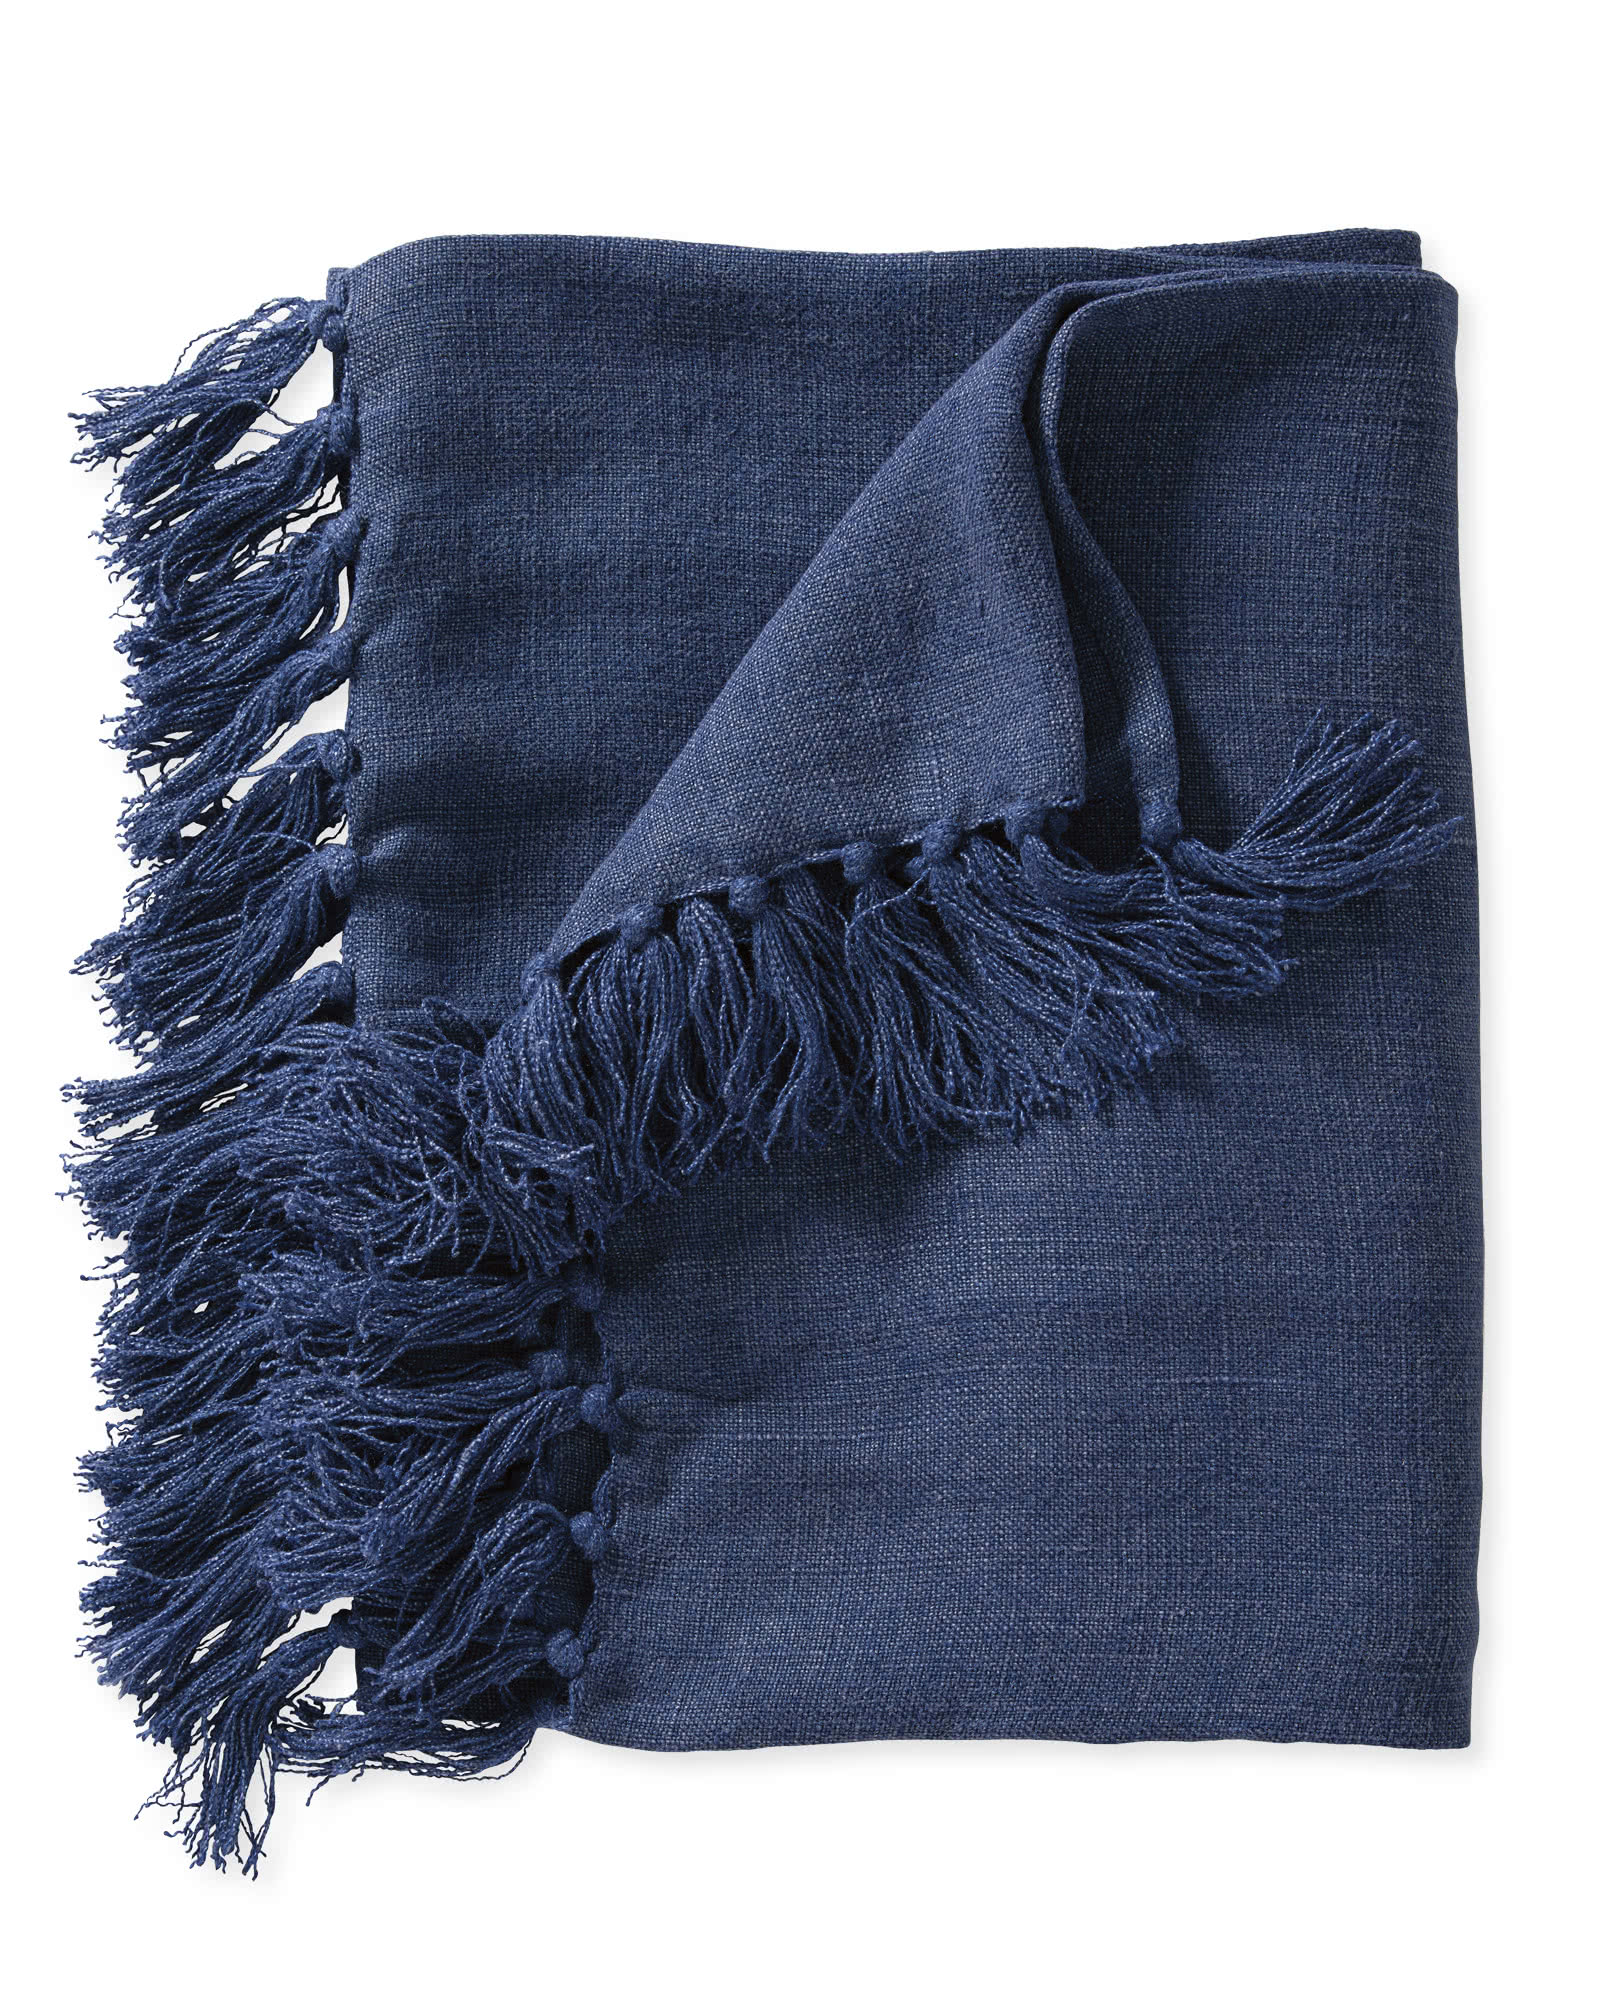 Throw_Blanket_Mendocino_Linen_Indigo_MV_0237_Crop_SH.jpg